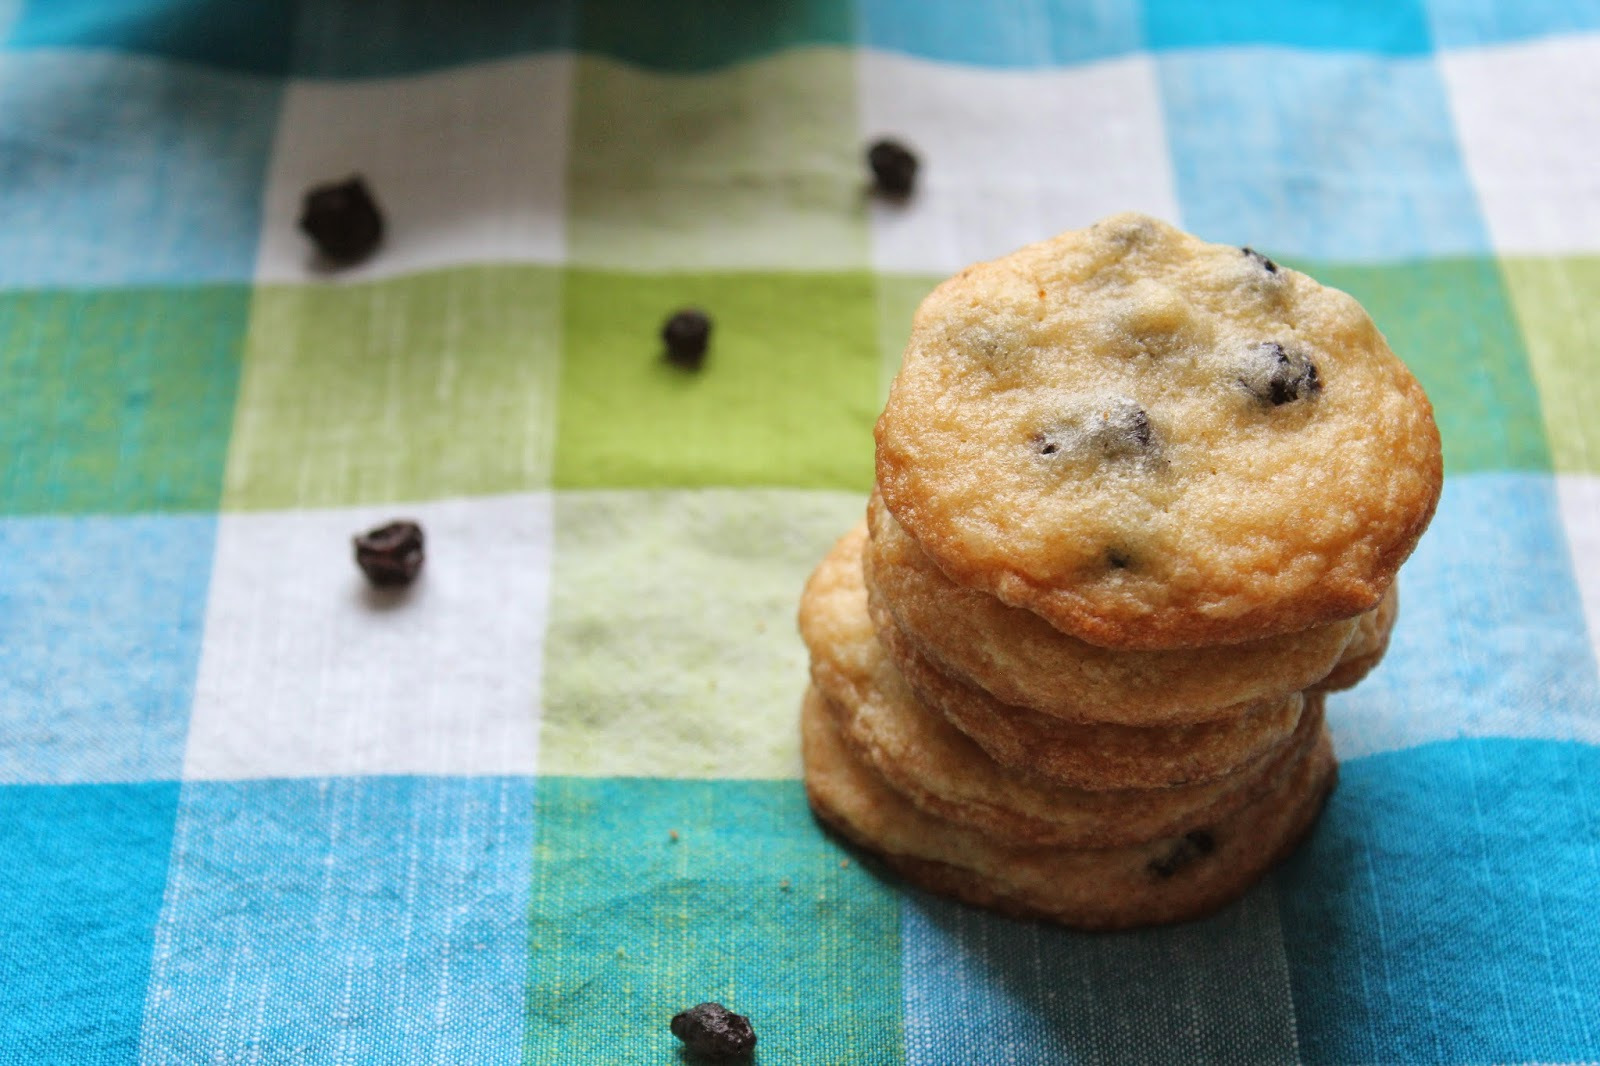 Momofuku Milk Bar blueberry and cream cookies